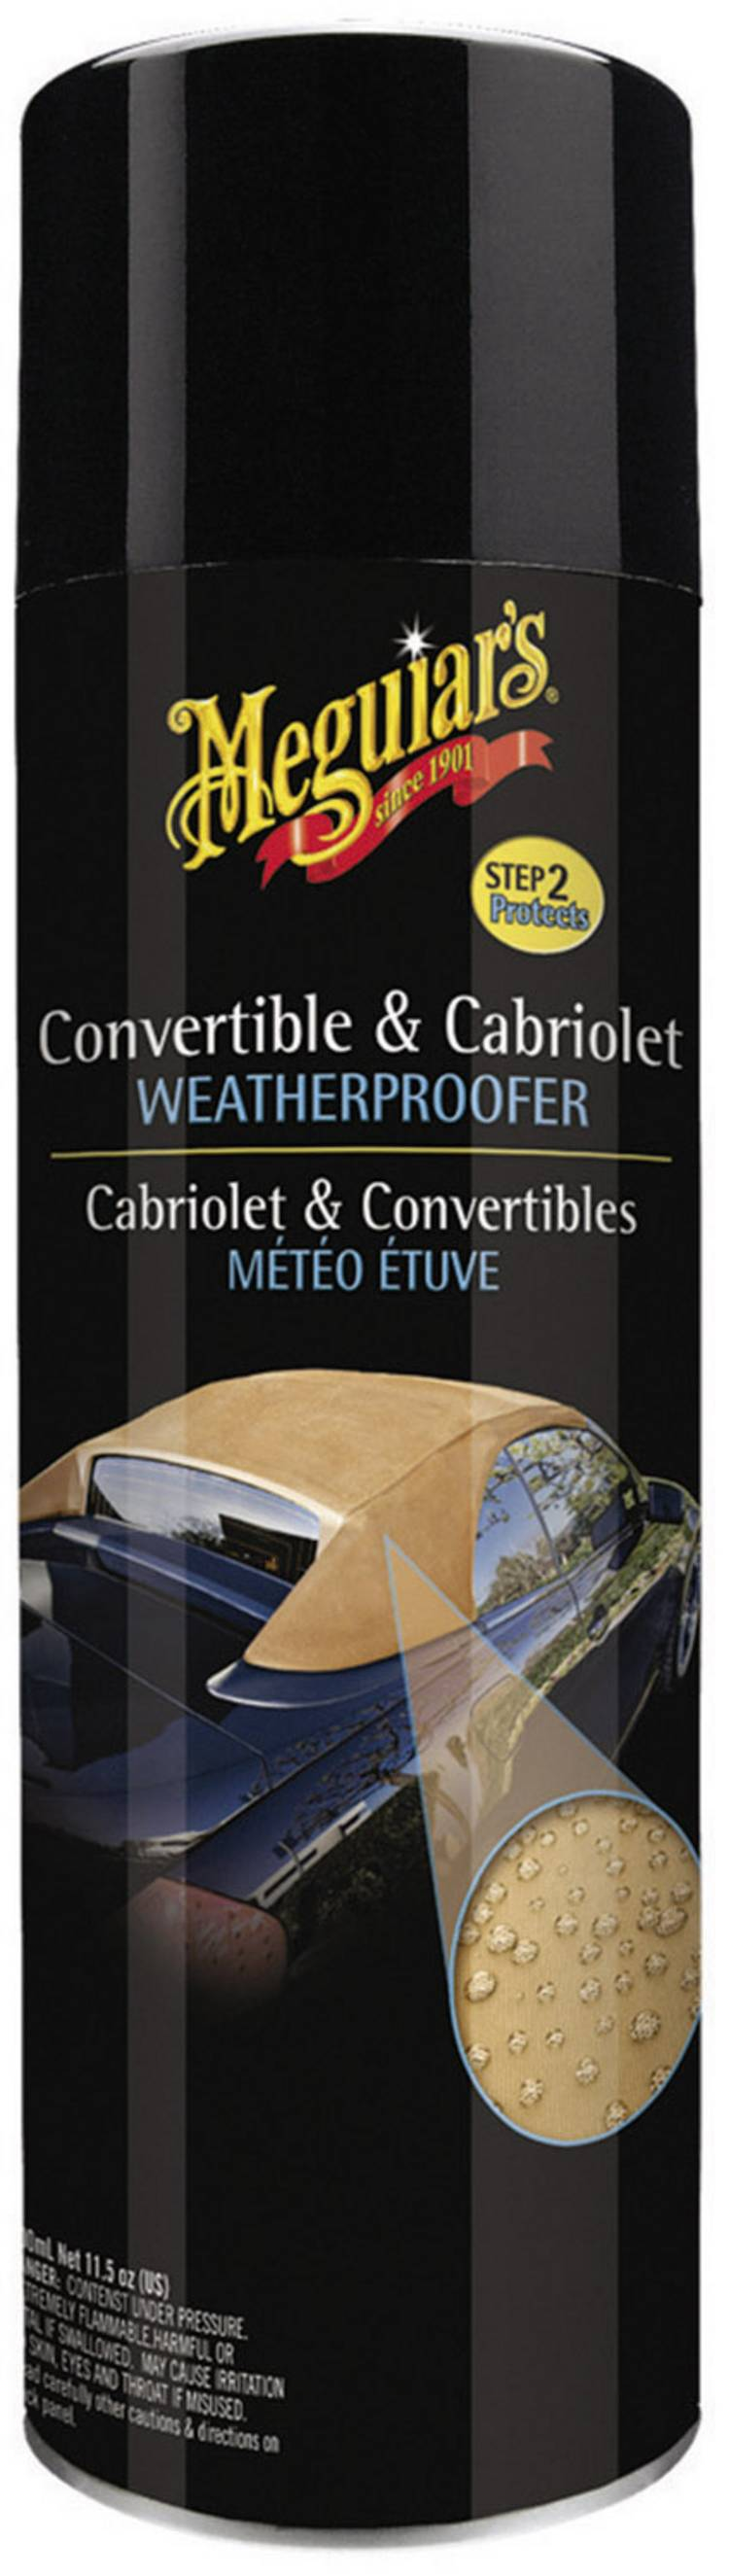 Image of Convertible Weatherproofer - impregneermiddel voor cabriodaken 500 ml Meguiars Convertible Weatherproofer G2112